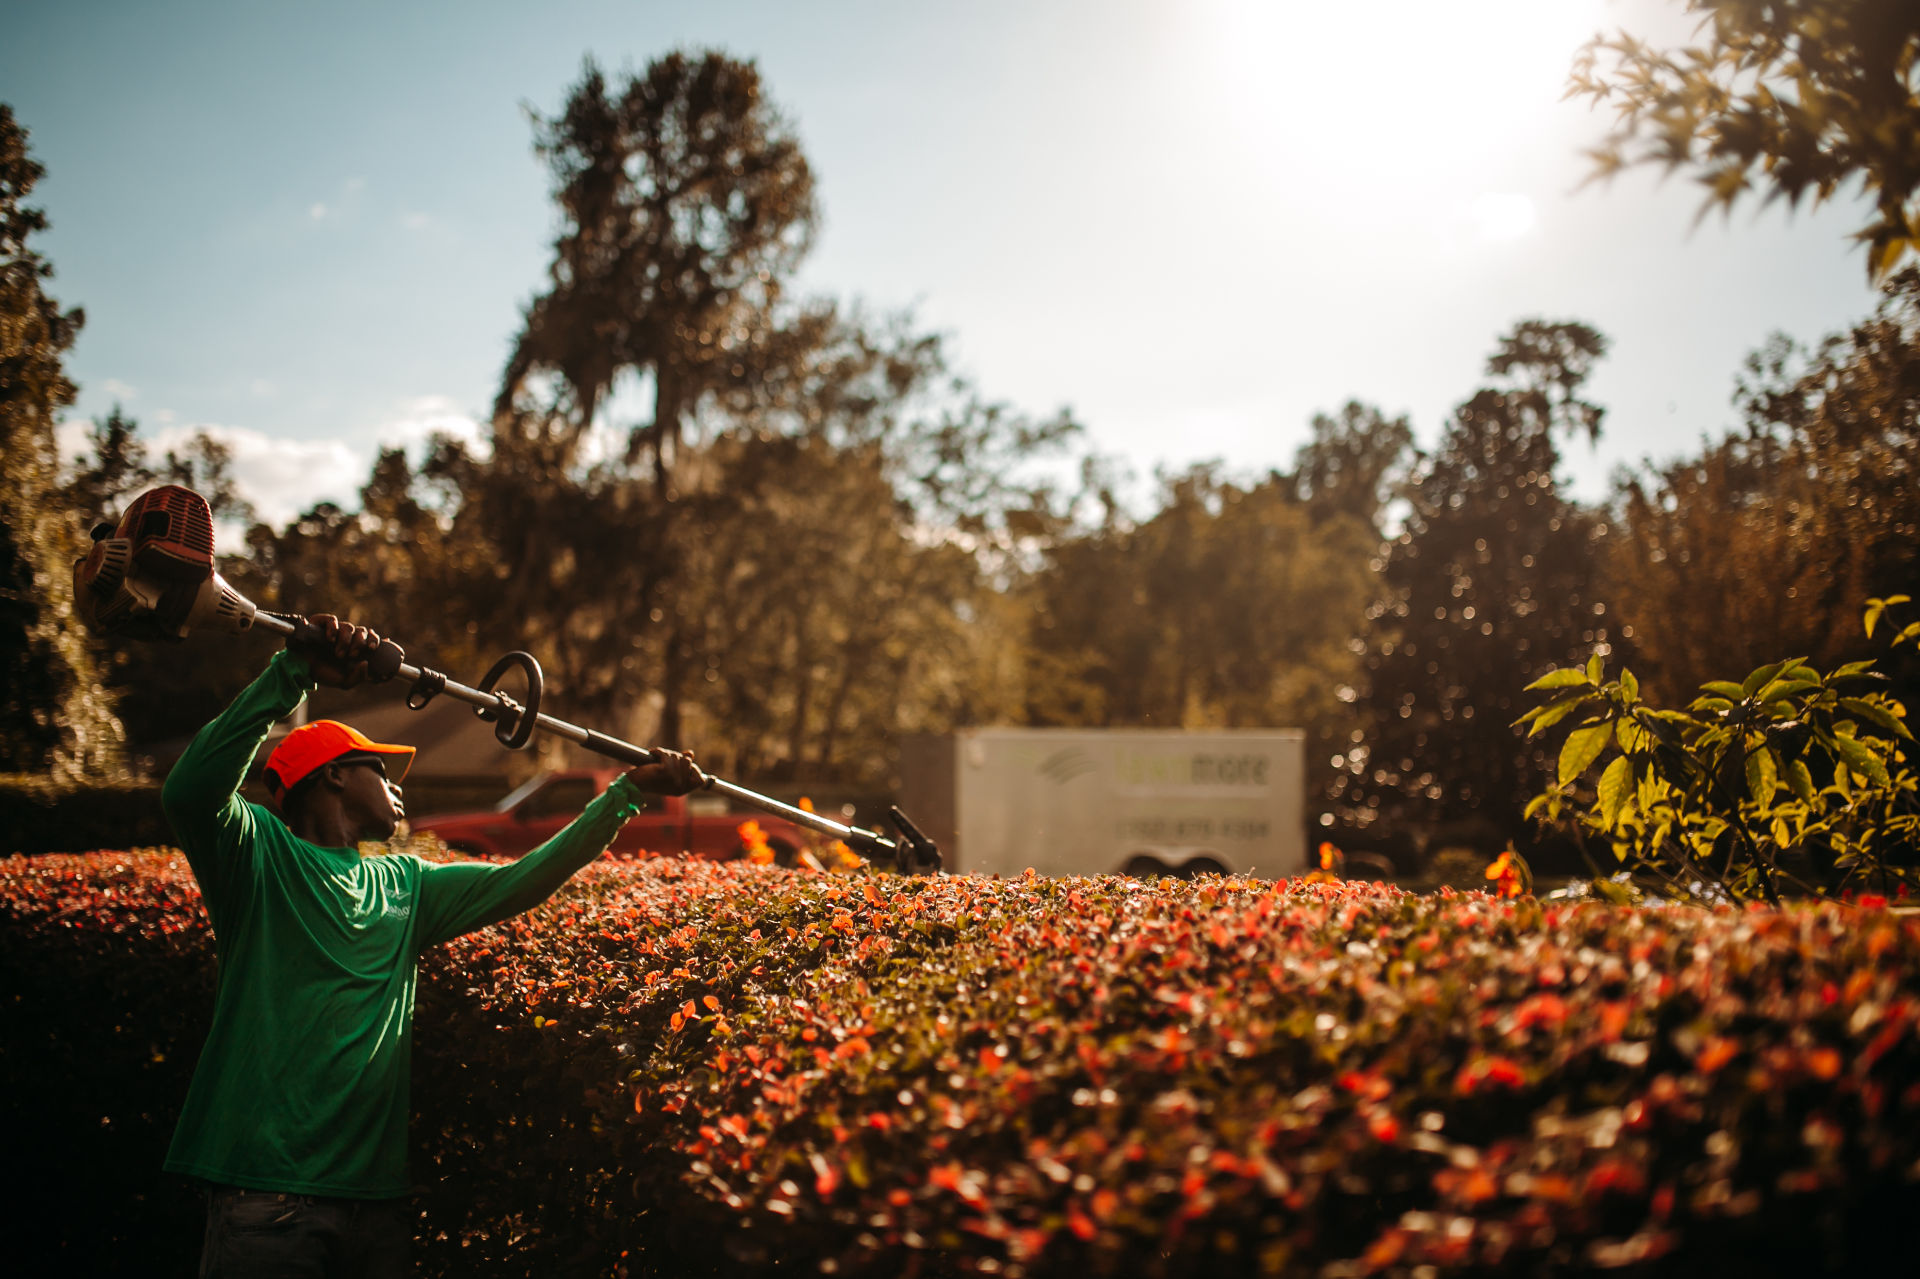 A man trimming the hedges with trimmer